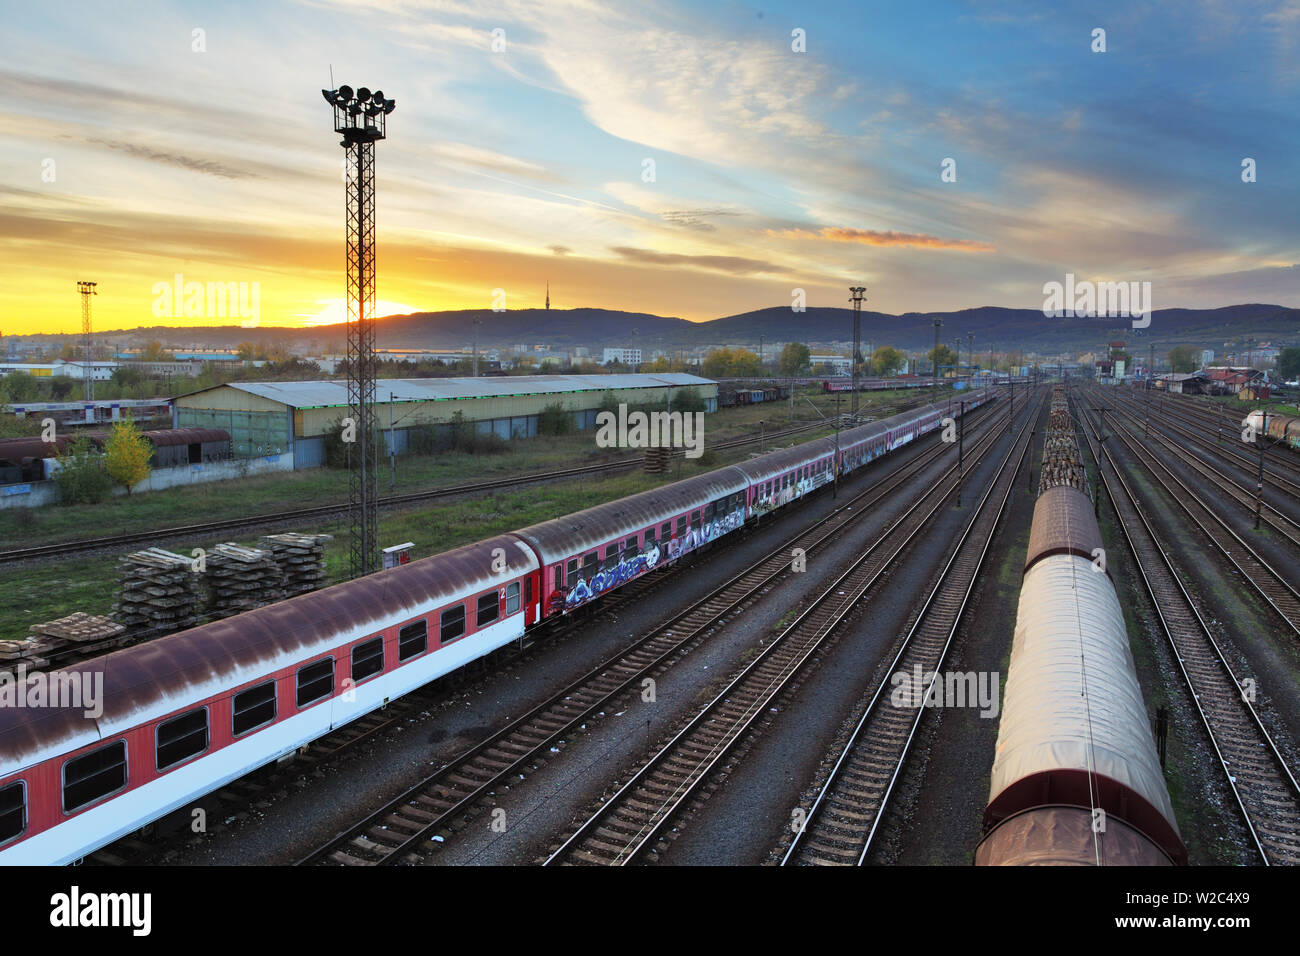 Train freight station - Cargo transportation at sunset Stock Photo